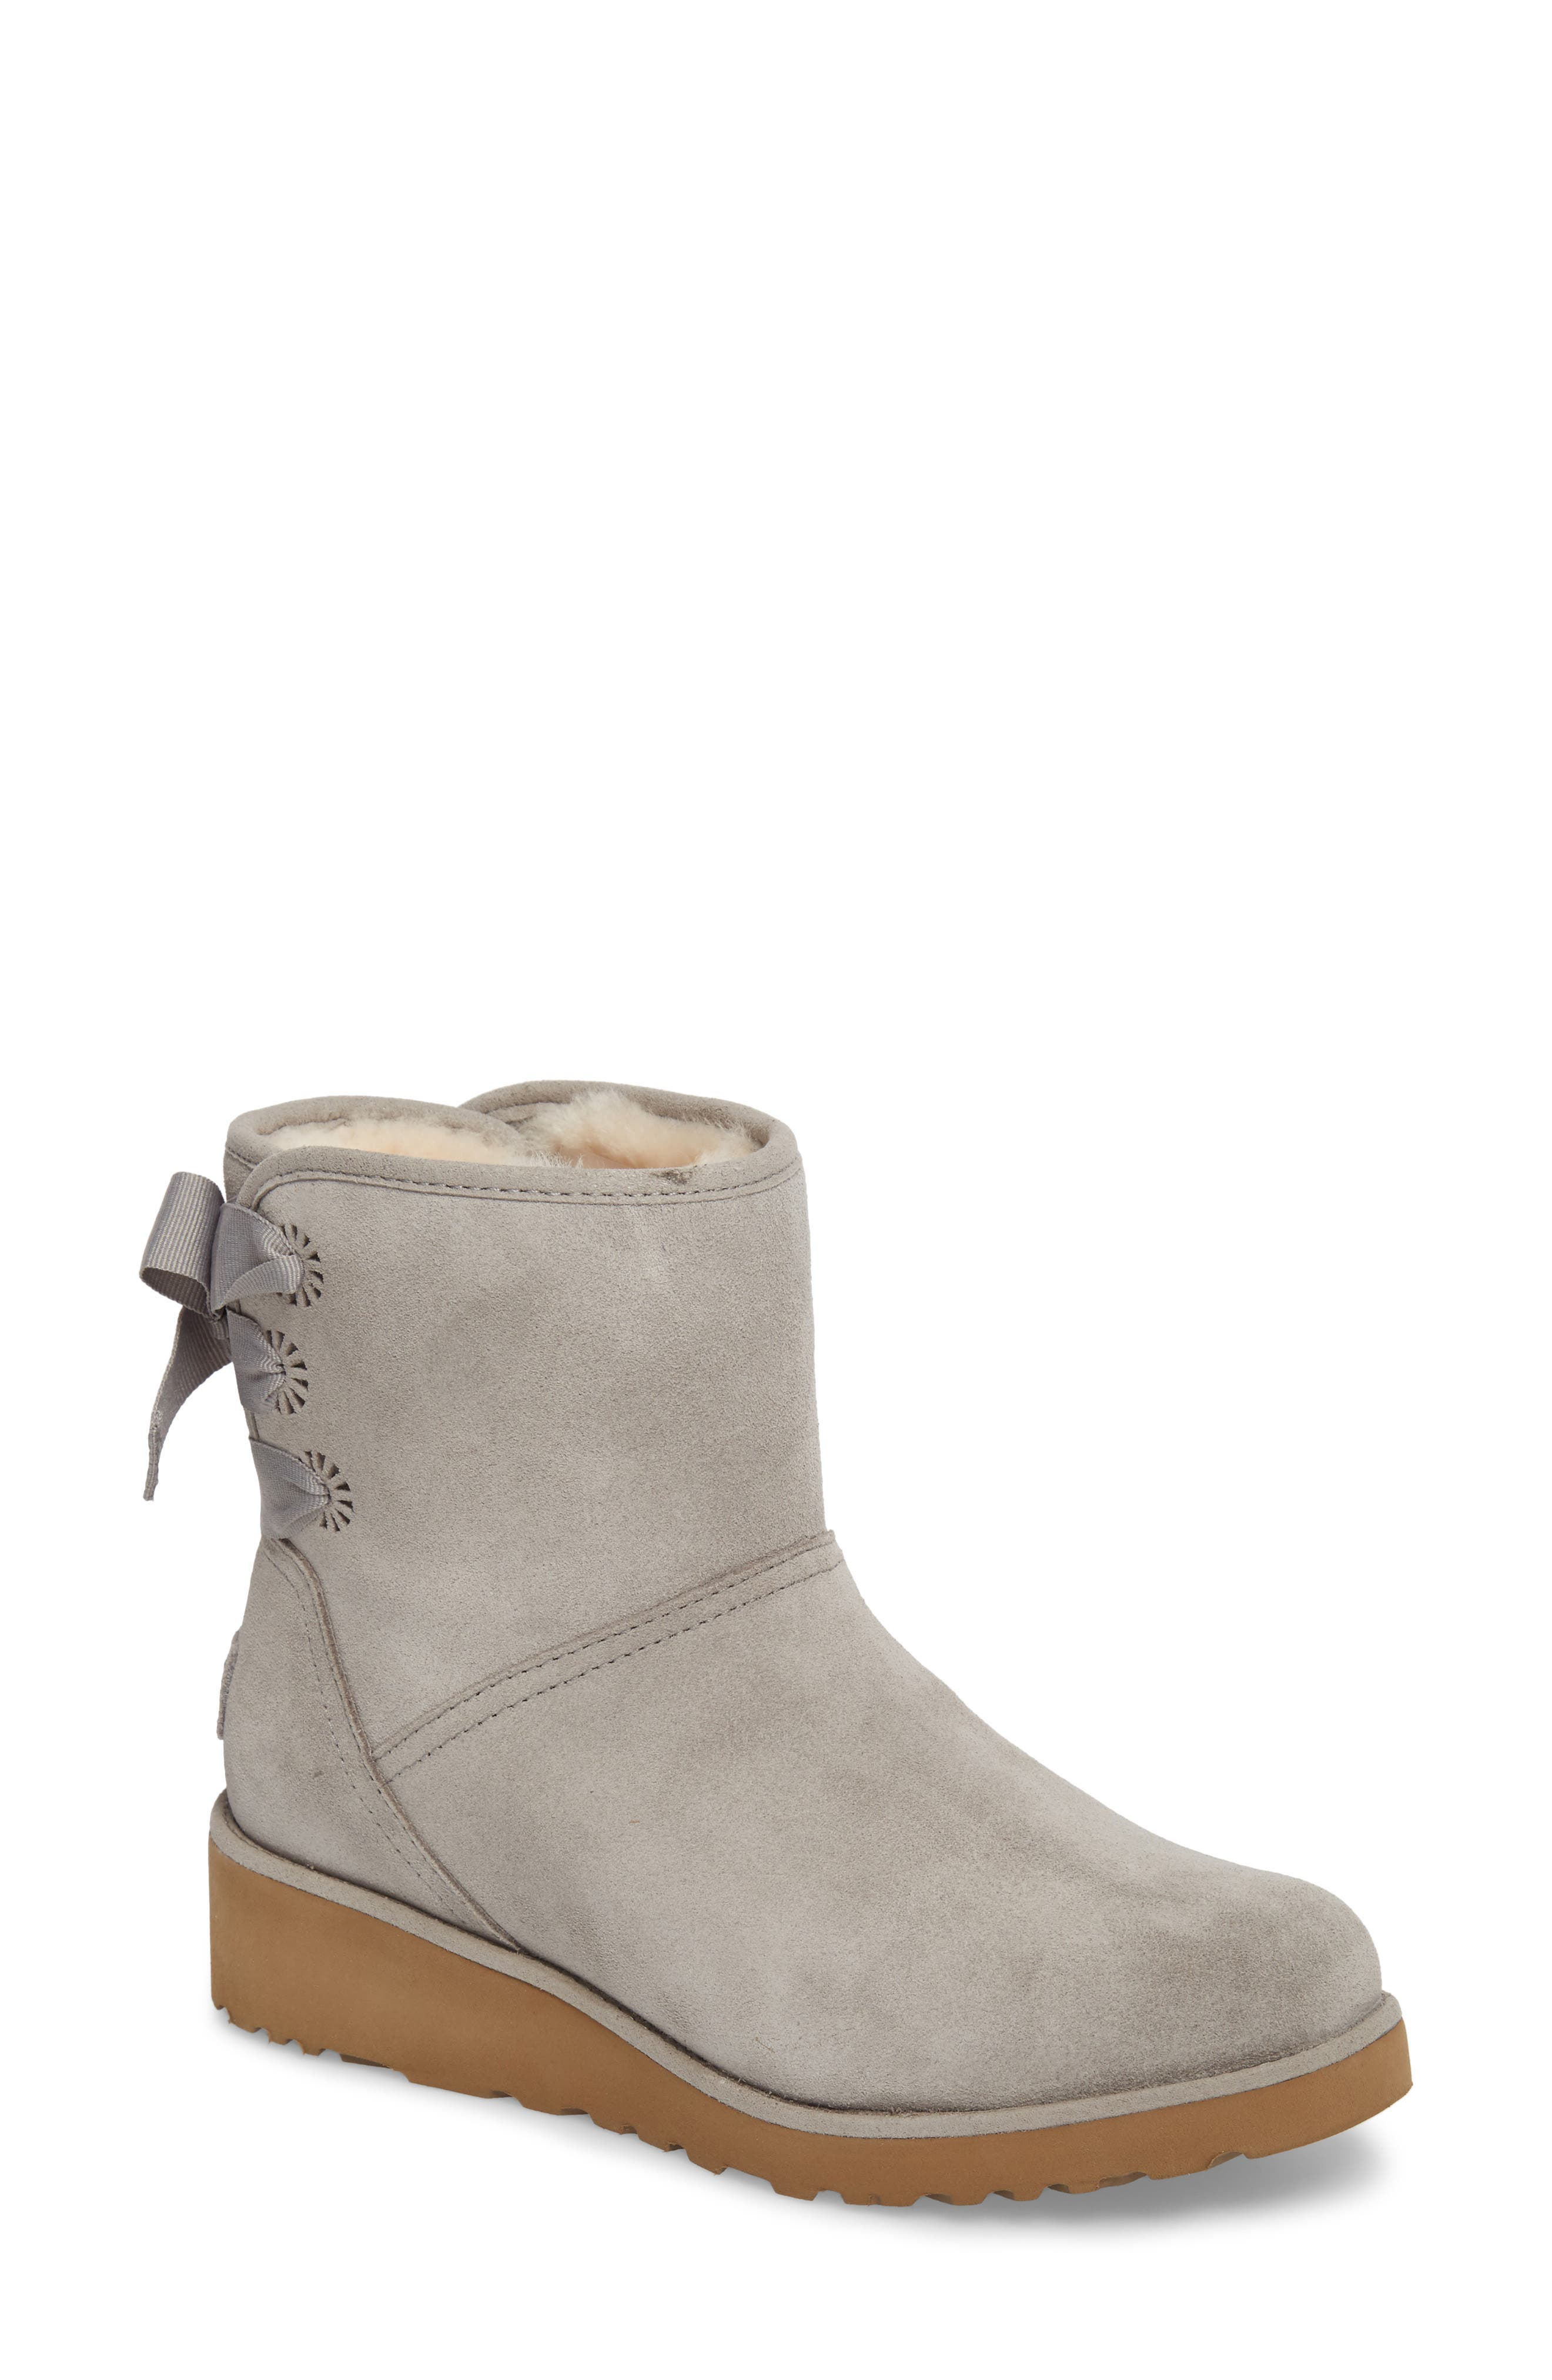 Drew Sunshine Perforated Tie Back Boot,                             Main thumbnail 1, color,